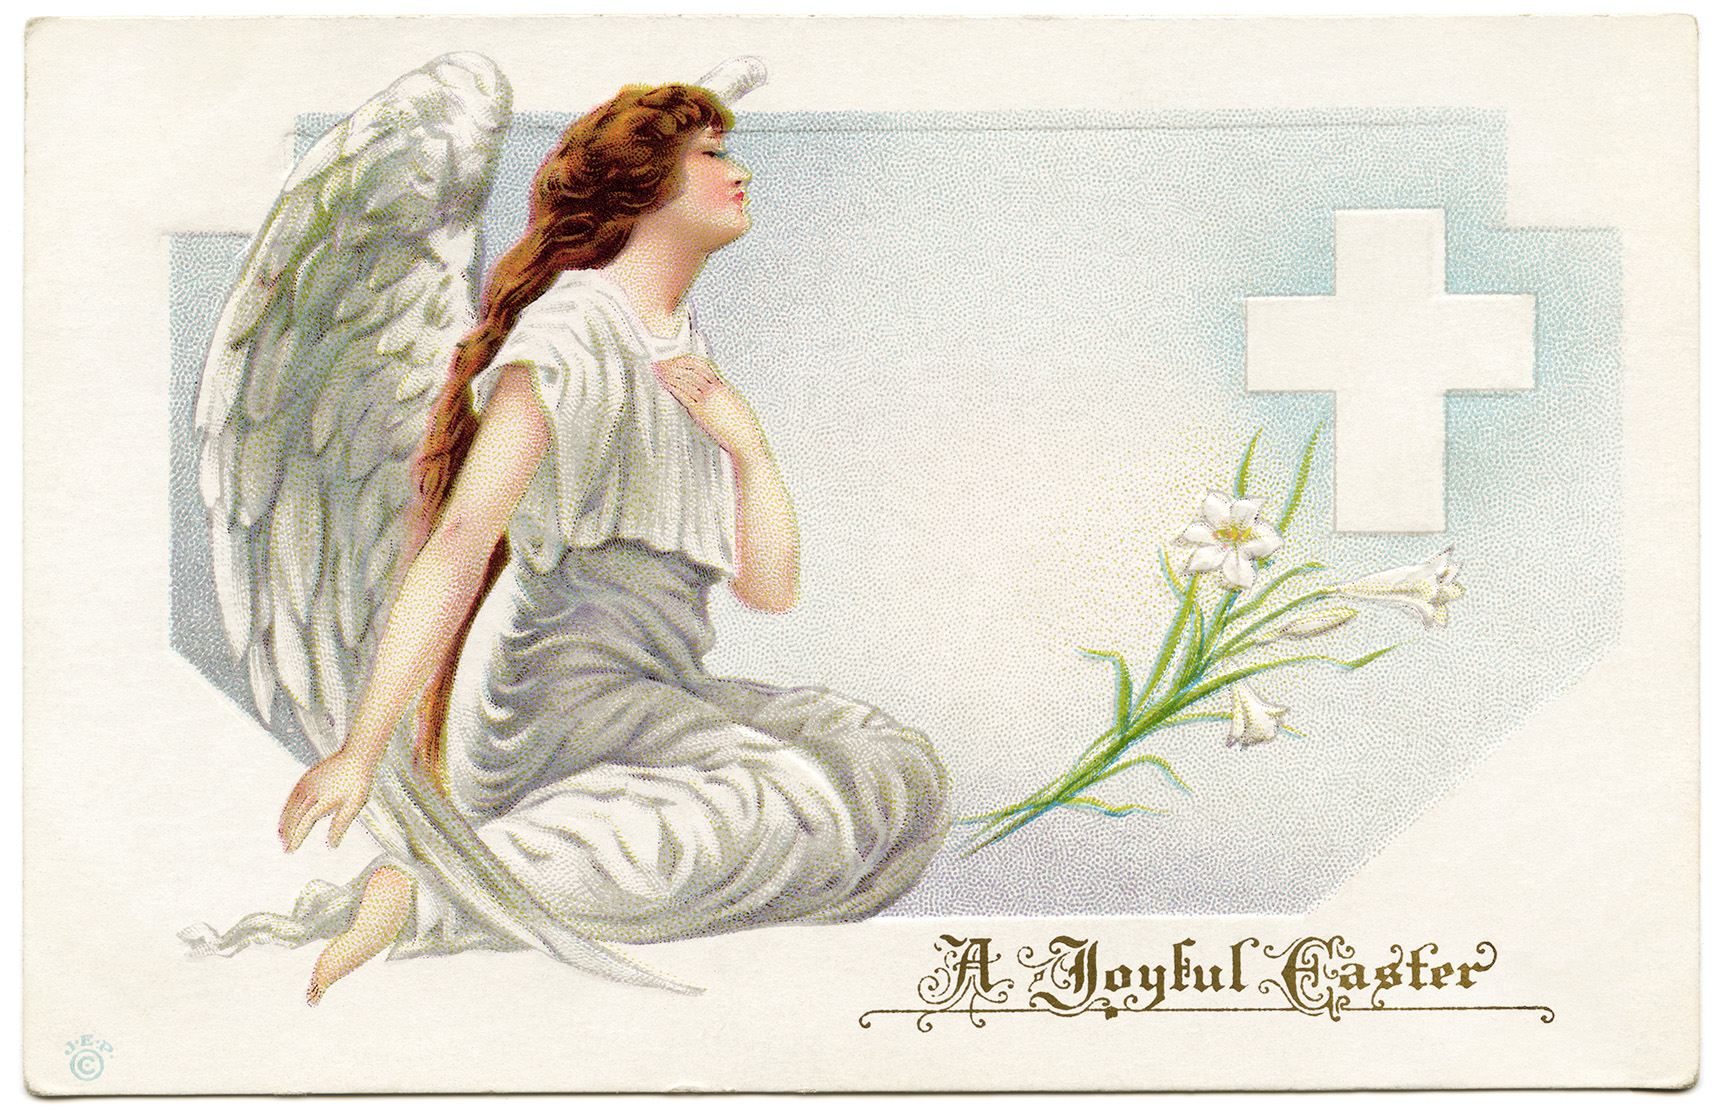 vintage easter postcard, angel clip art, old fashioned easter card, angel kneeling by cross, religious easter illustration